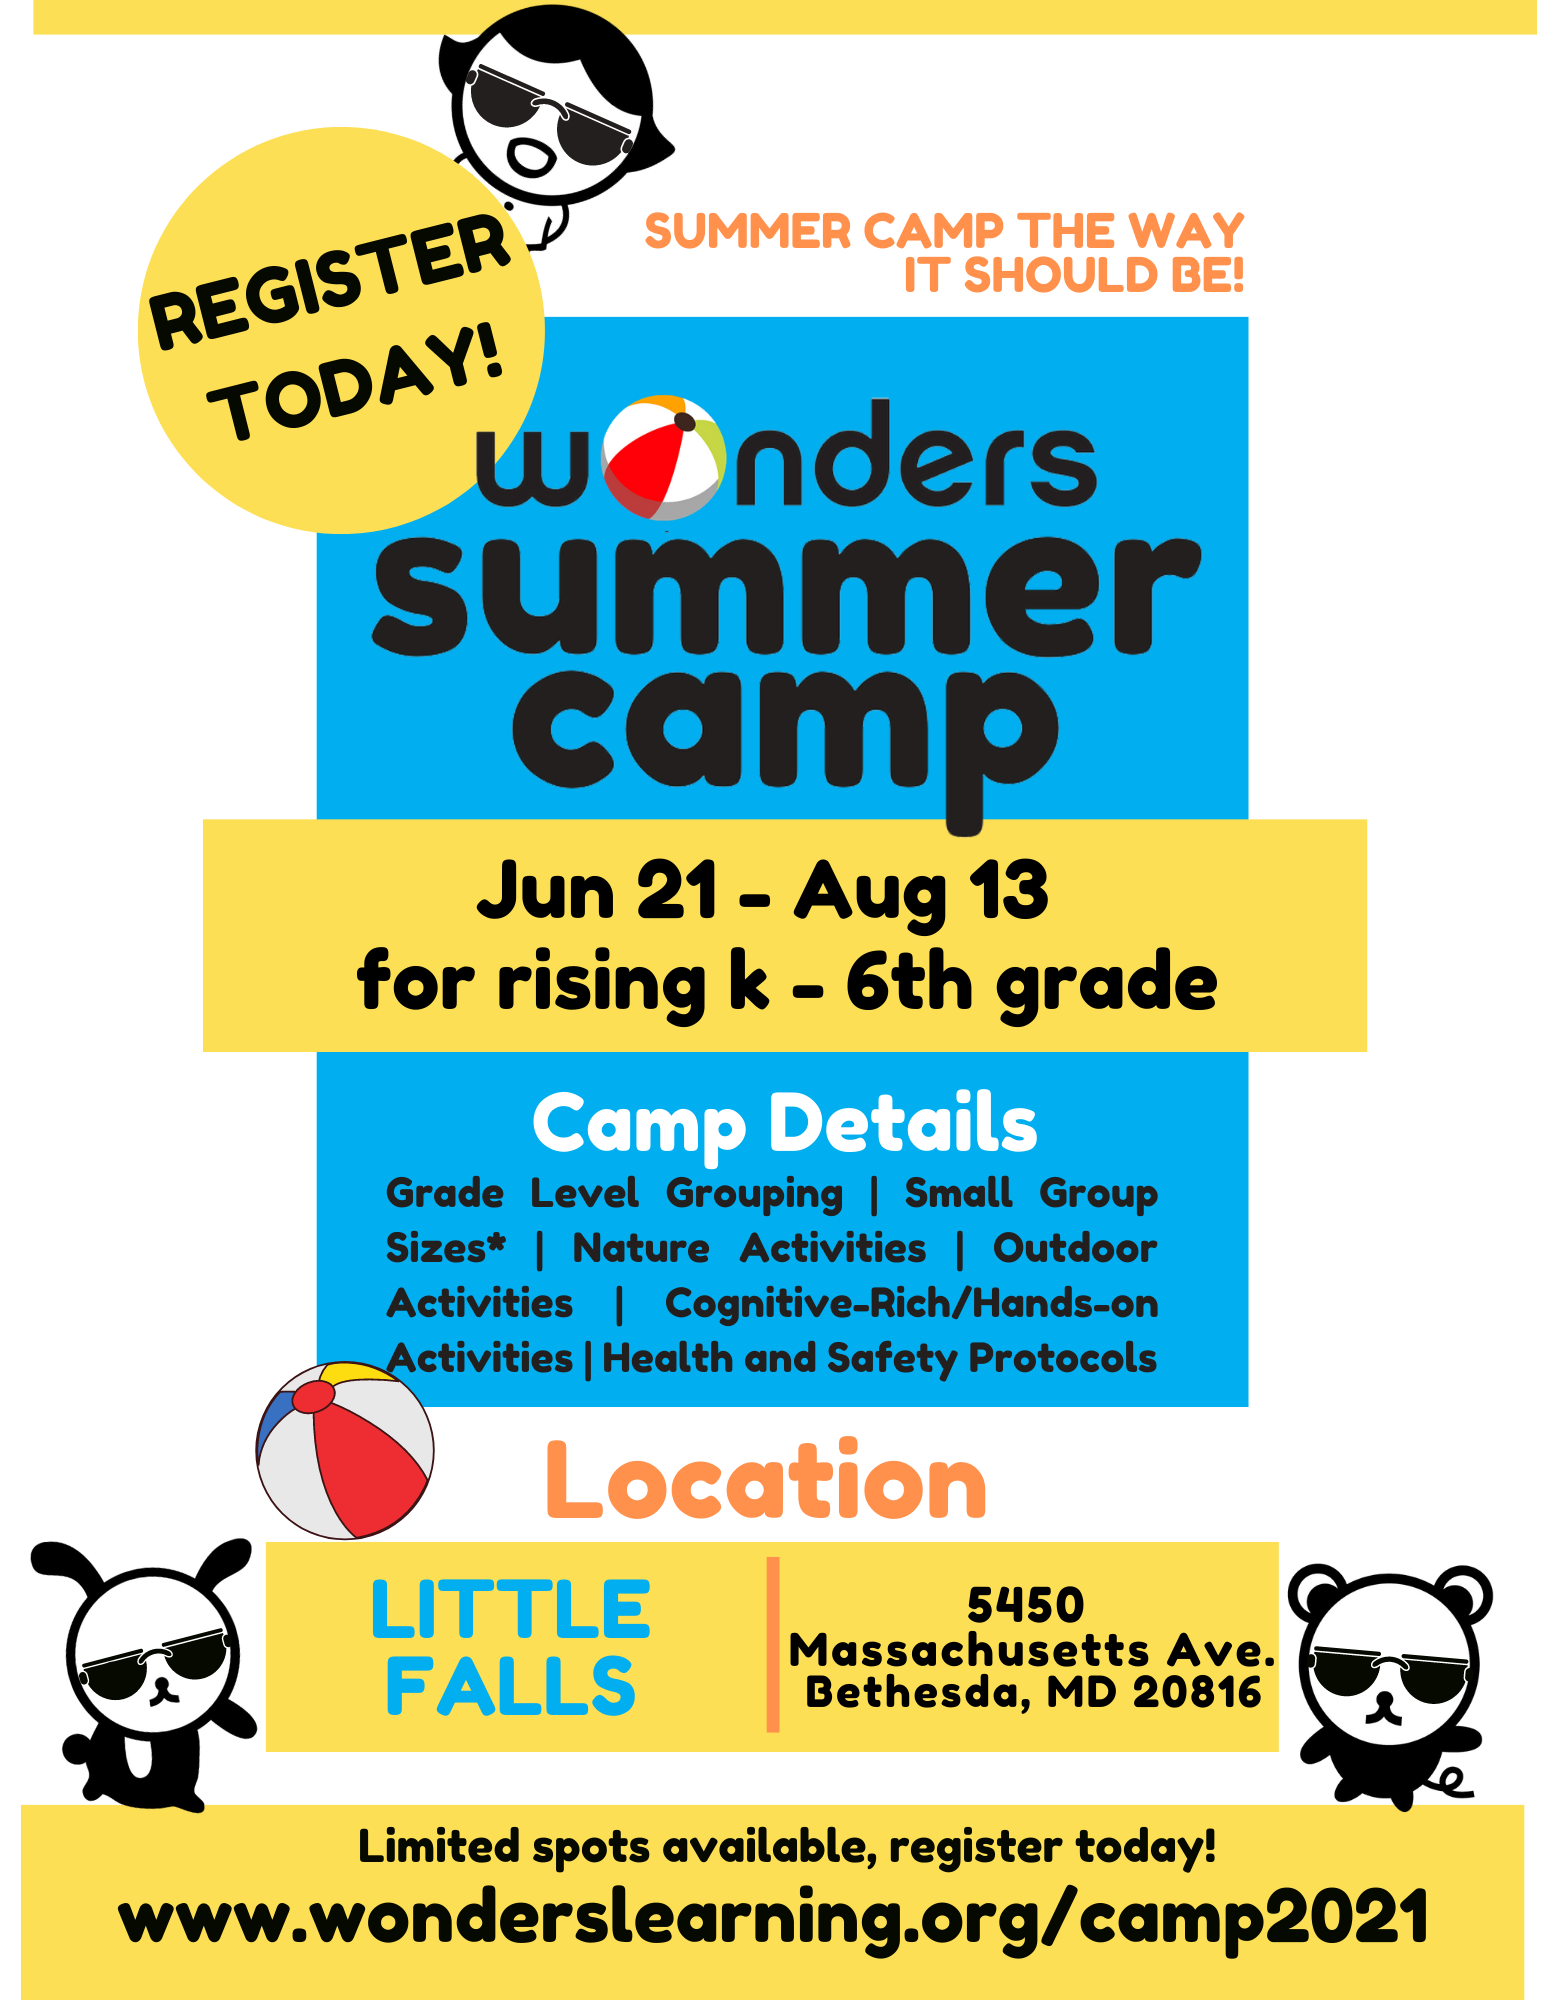 Summer Camp, June 21 - August 13th. Register today! Click here to learn more